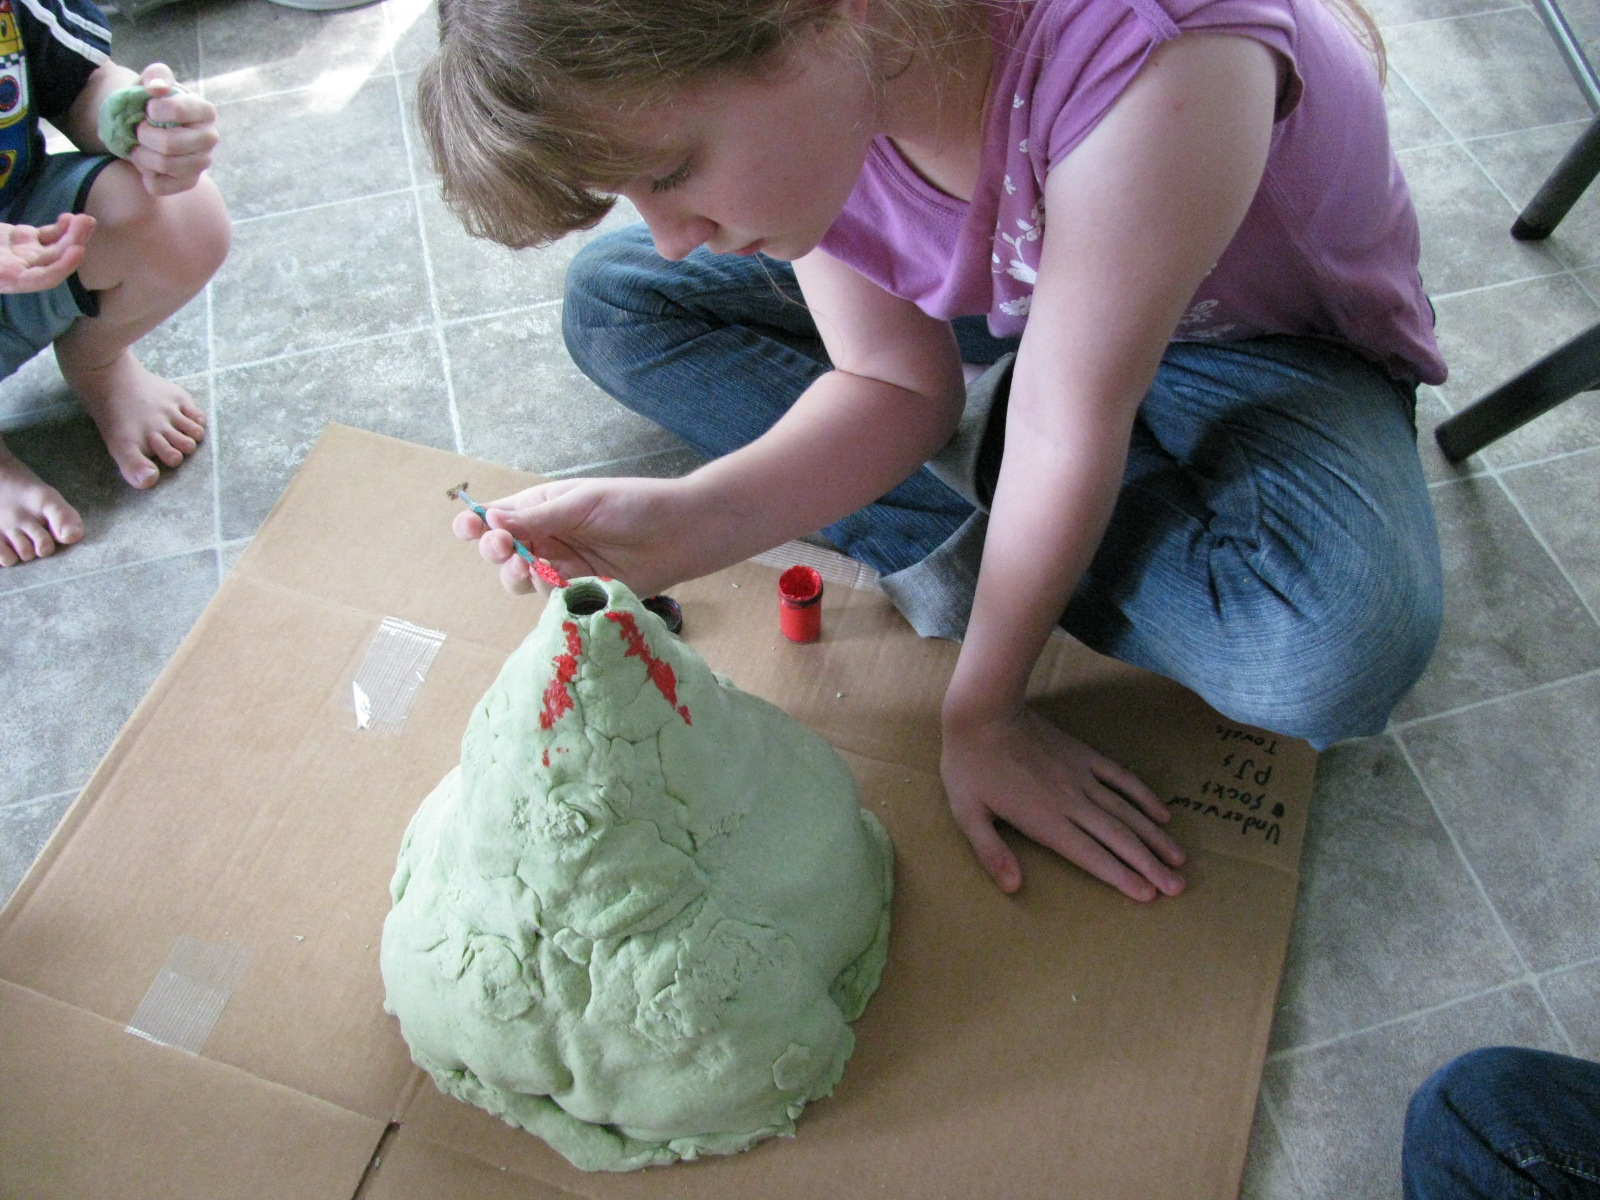 how to make volcano model for school project